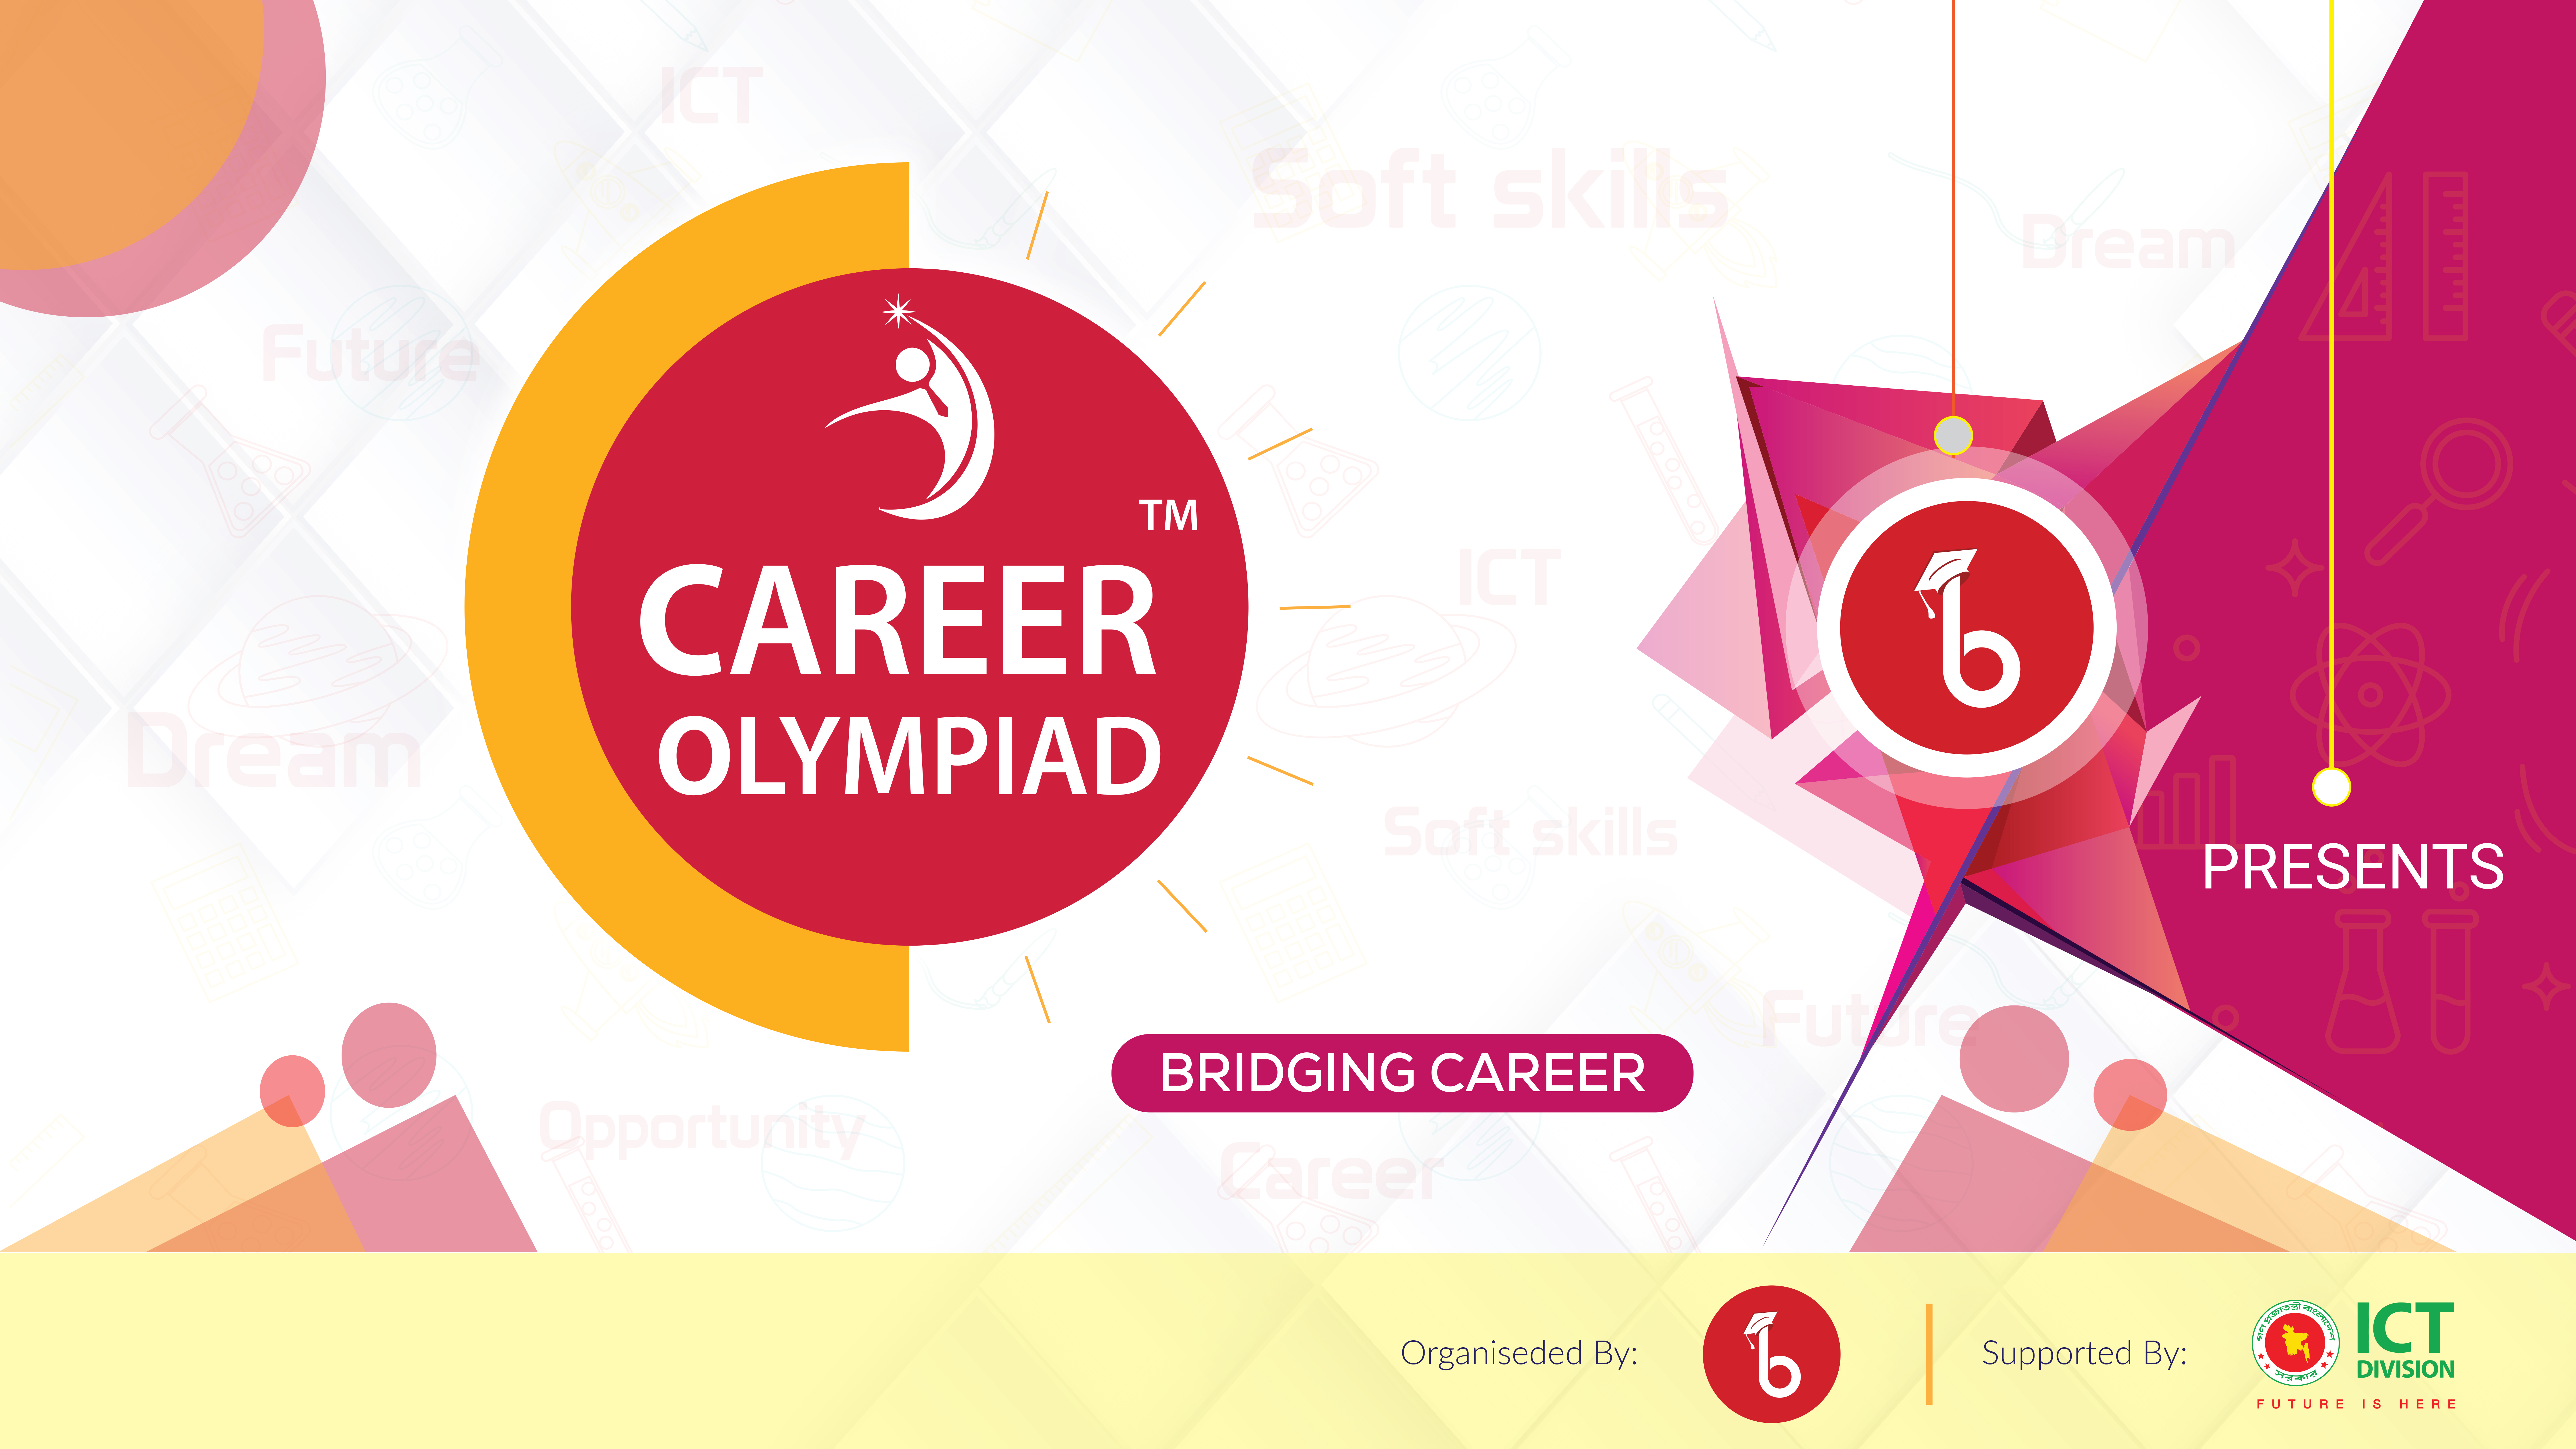 Join Career Olympiad